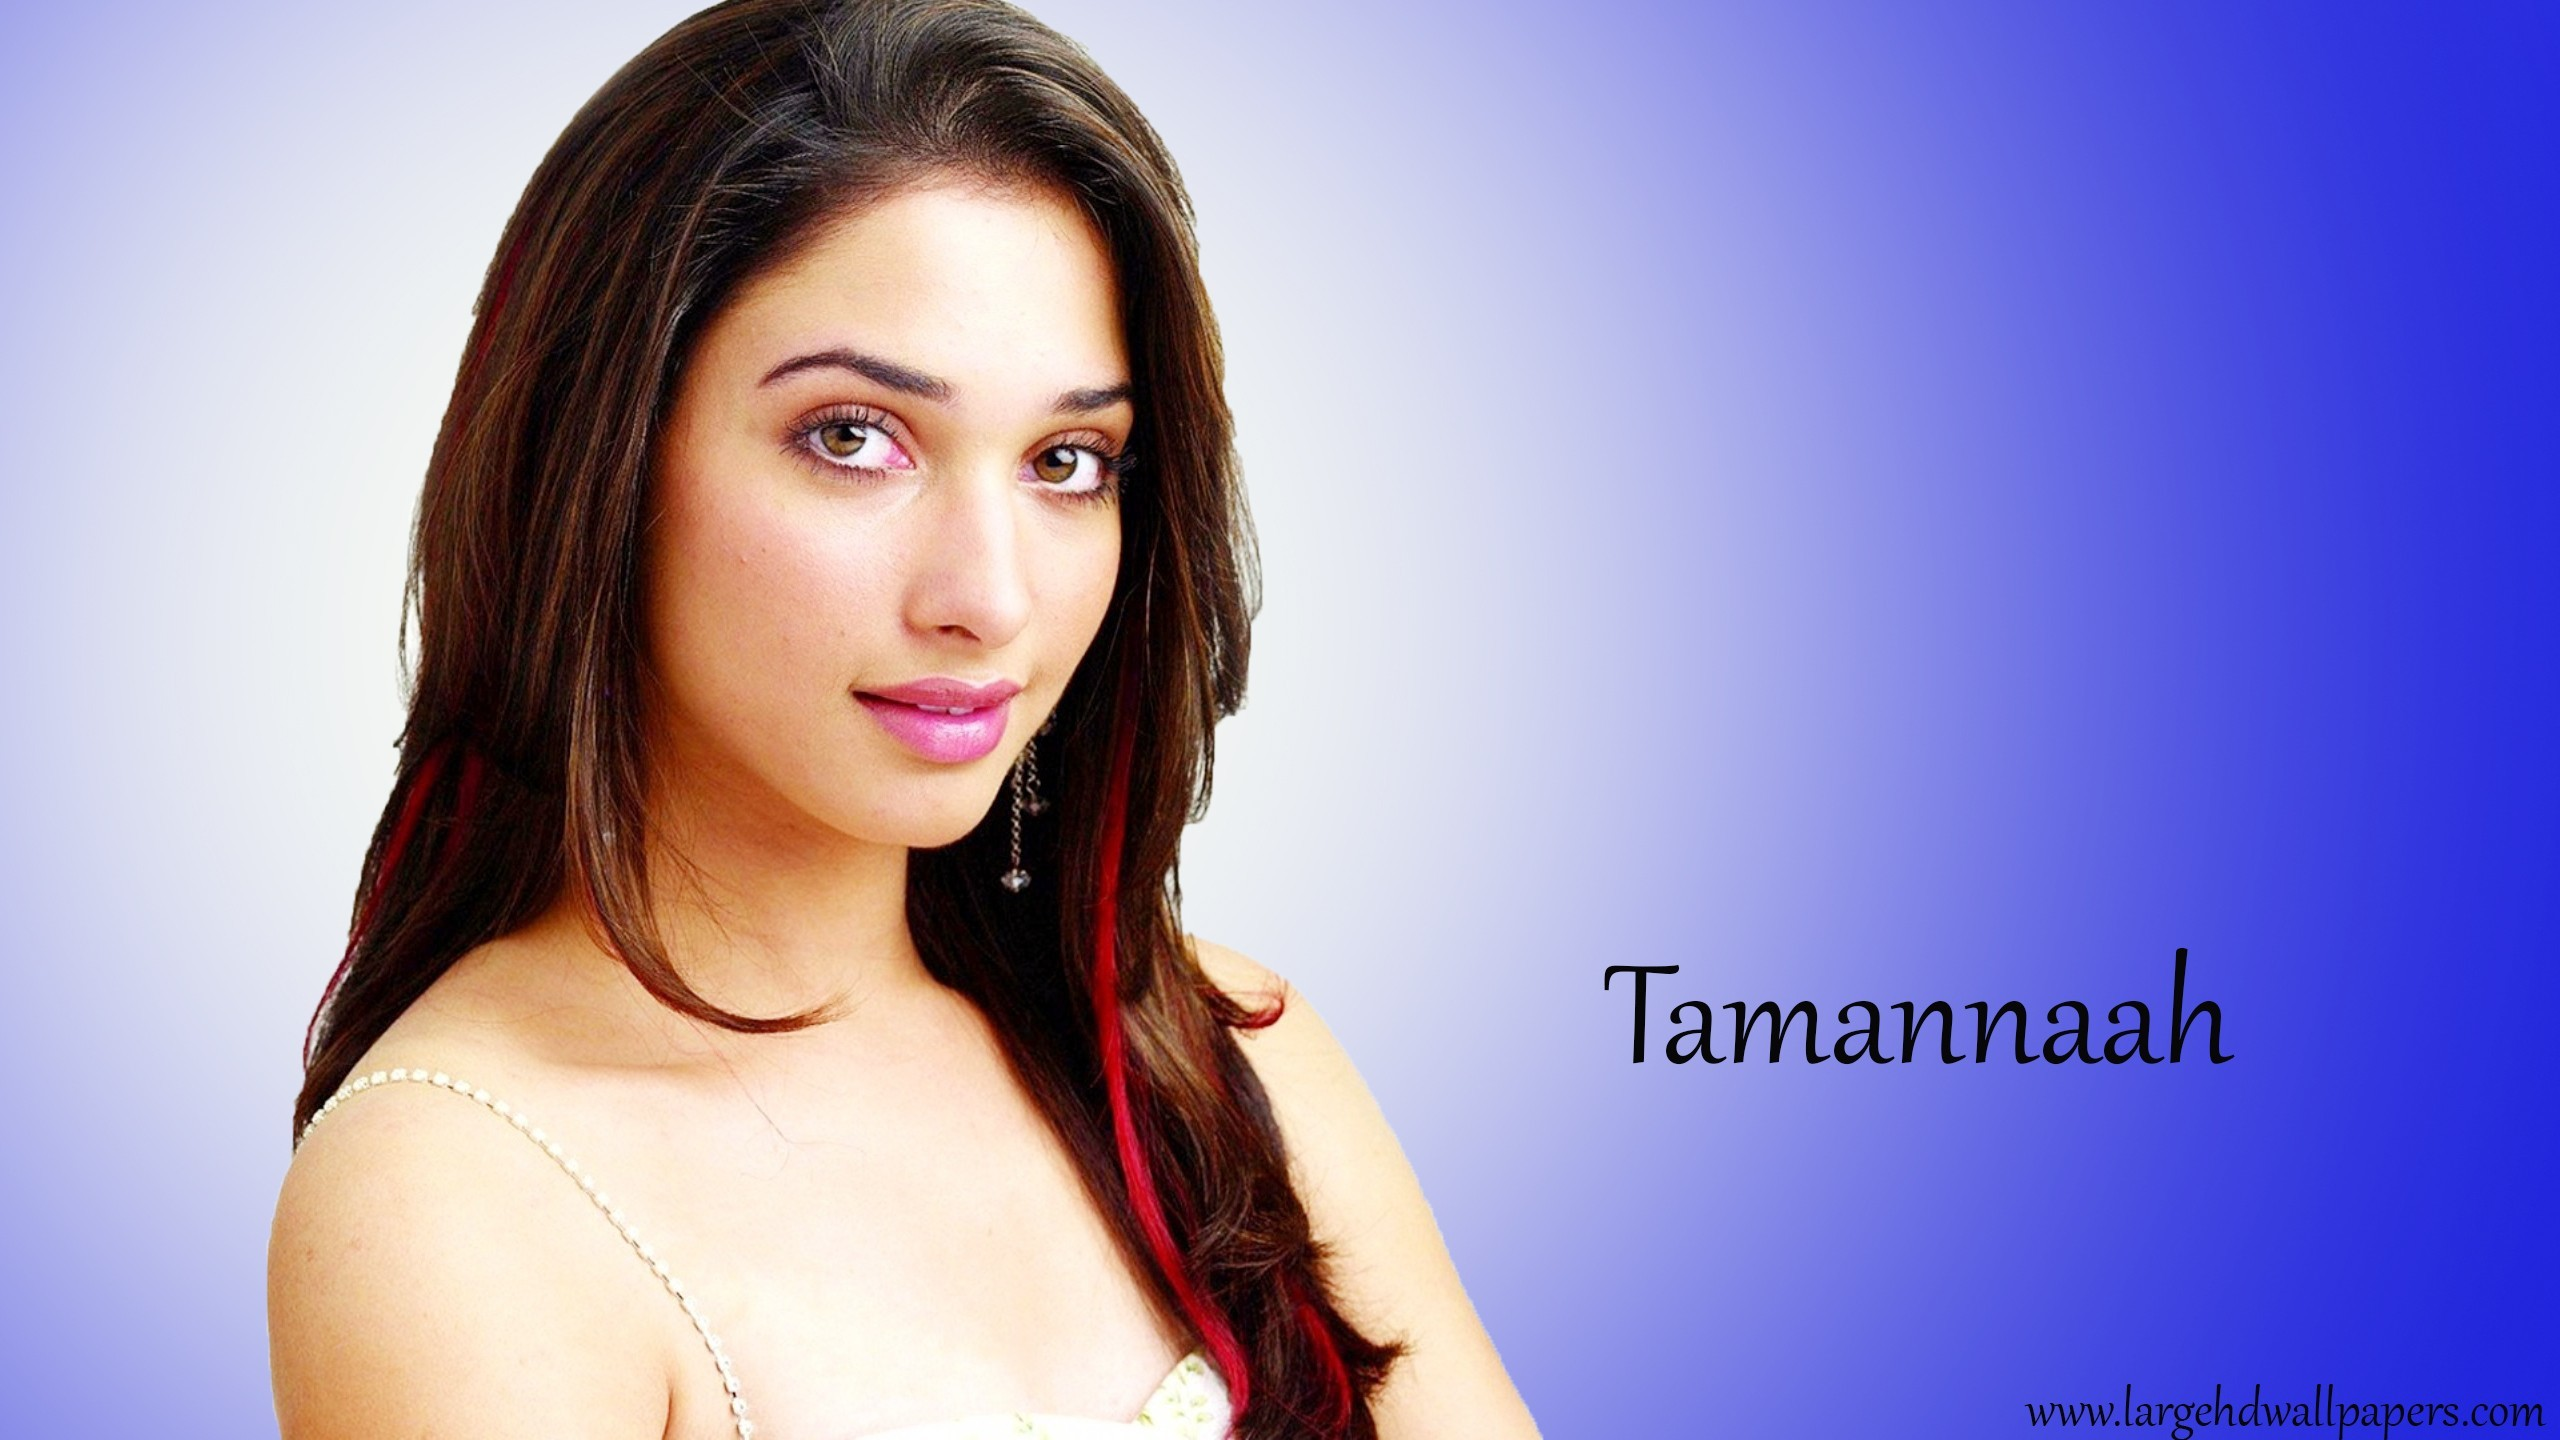 tamanna bhatia wallpapers hd 2018 (66+ background pictures)